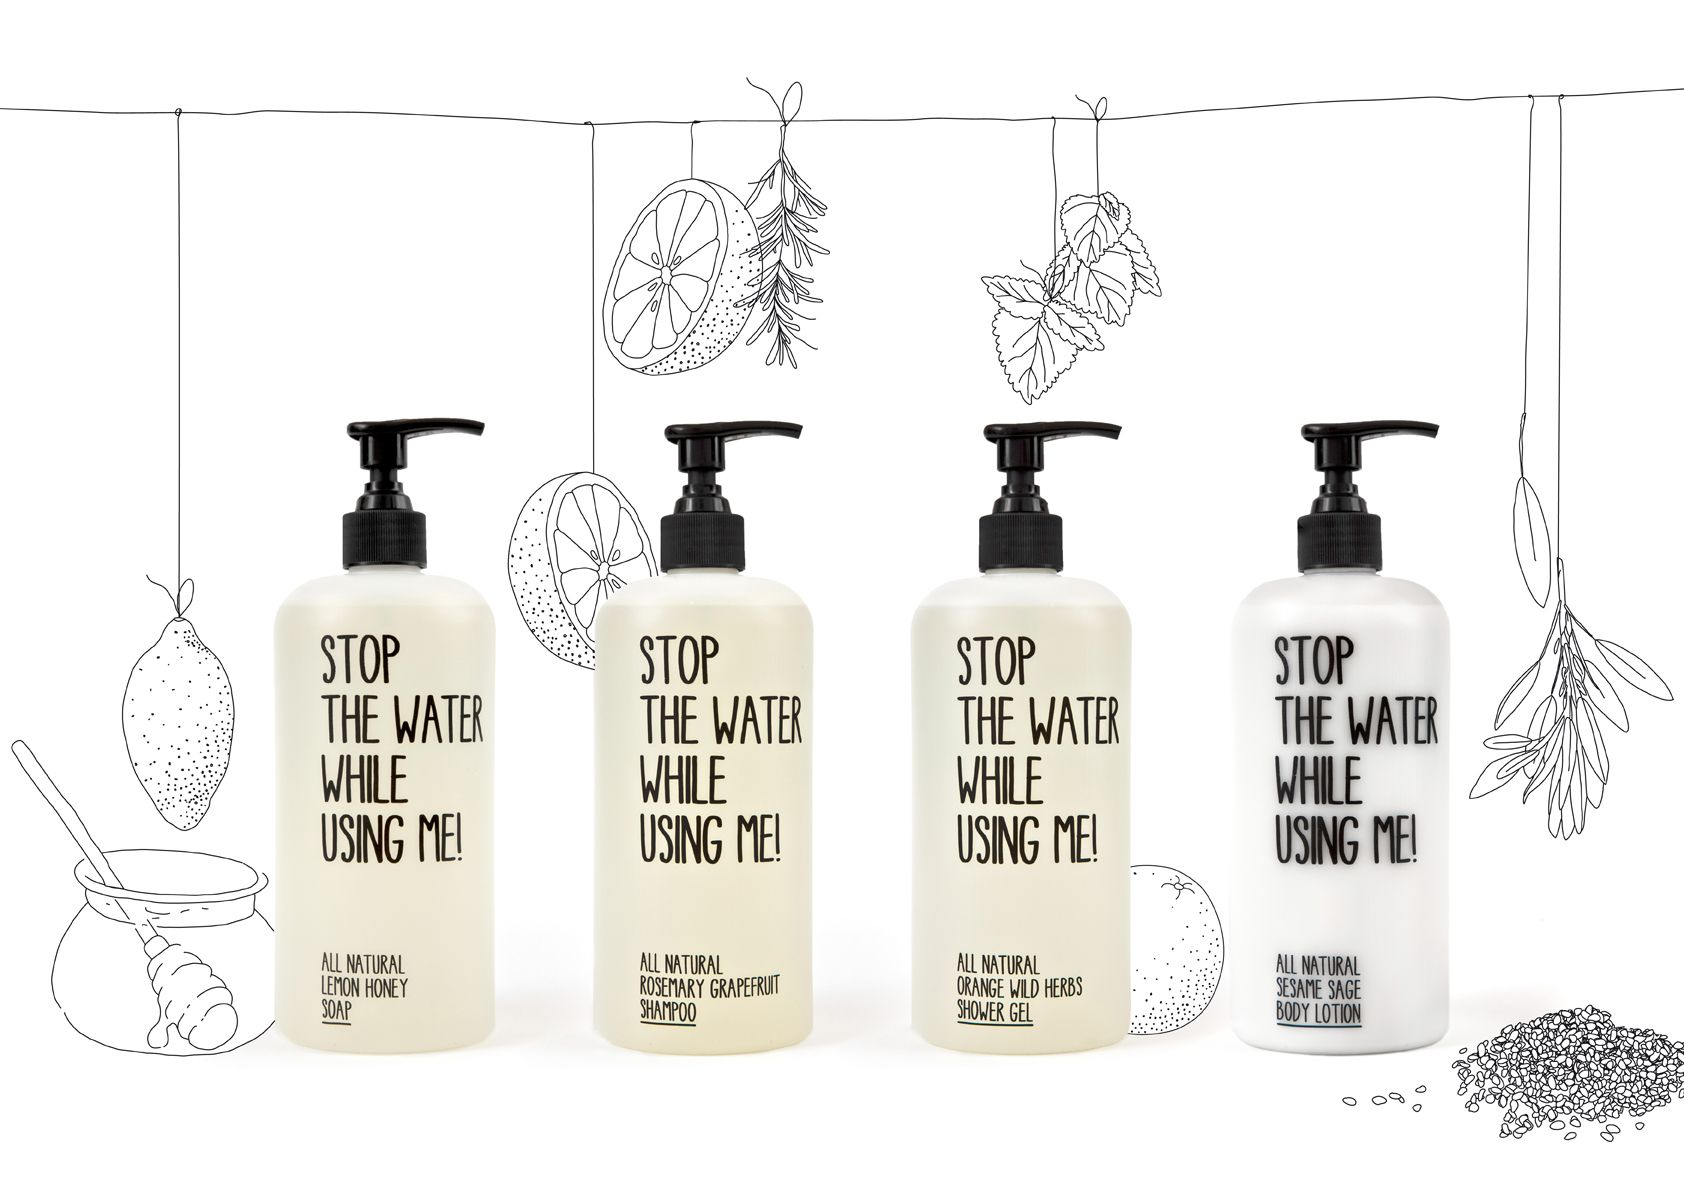 design_holdning_stop_the_water